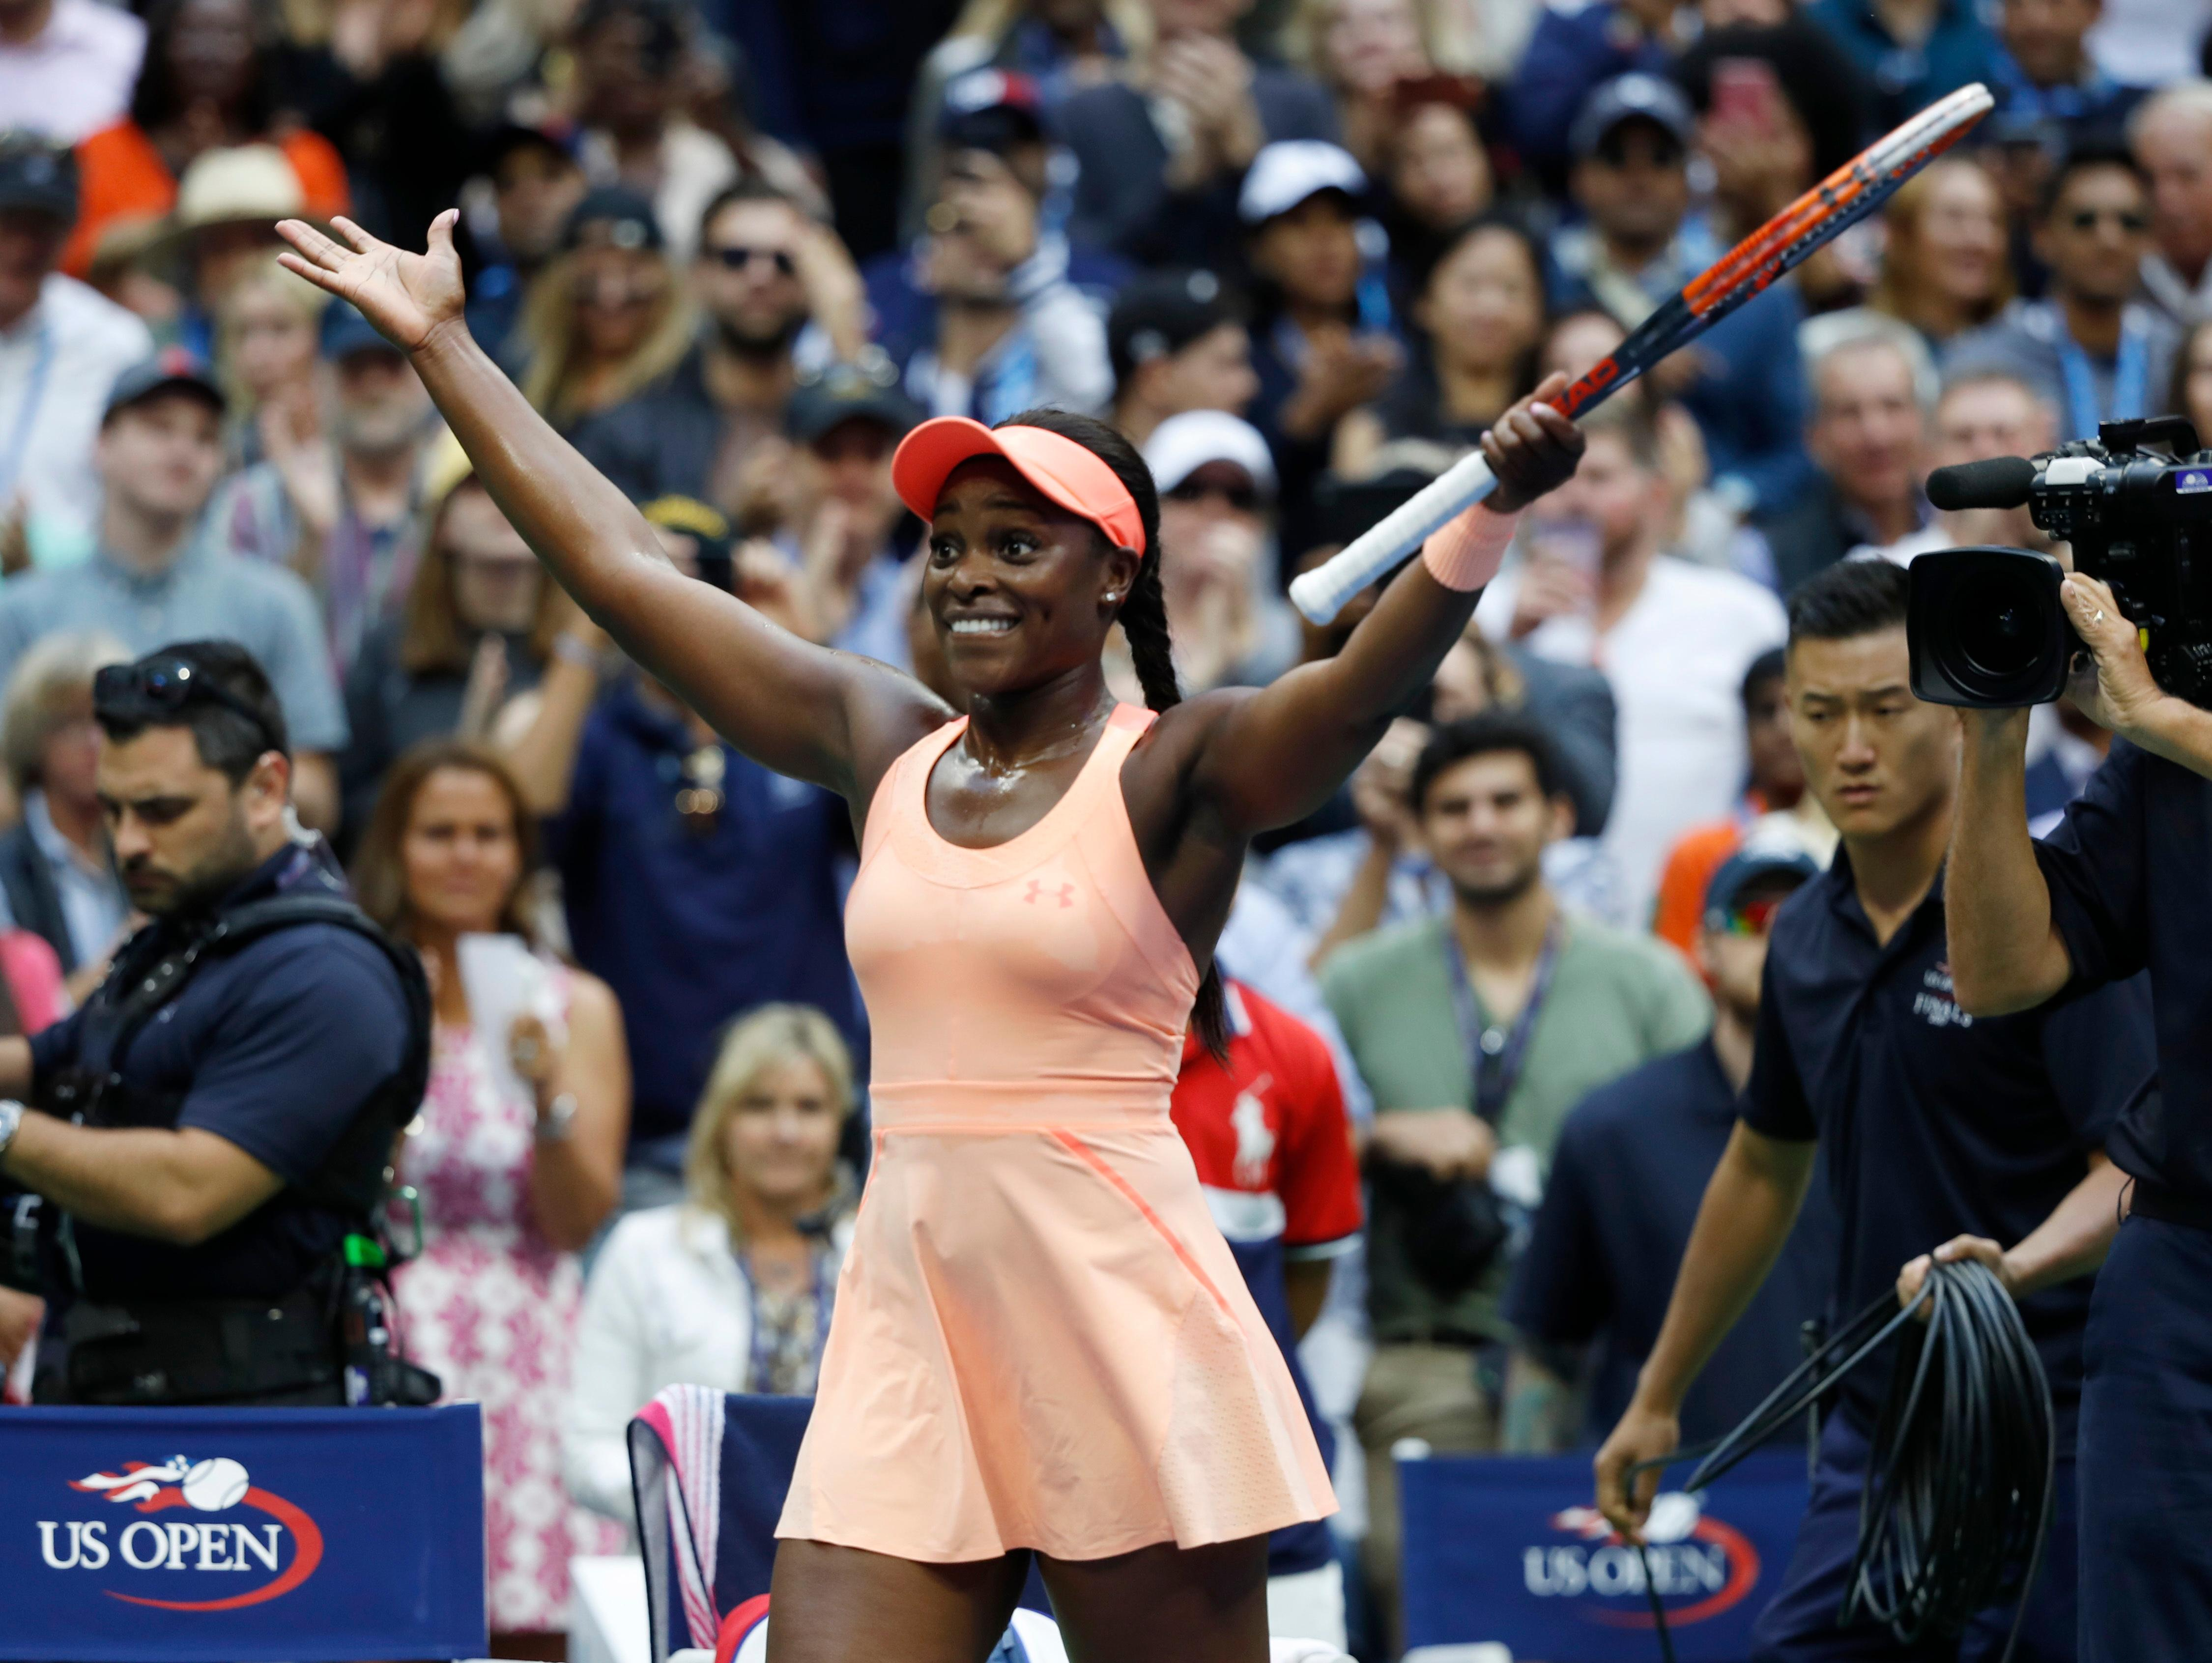 Sloane Stephens, of the United States, reacts after beating Madison Keys, of the United States, in the women's singles final of the U.S. Open tennis tournament, Saturday, Sept. 9, 2017, in New York. (AP Photo/Adam Hunger)